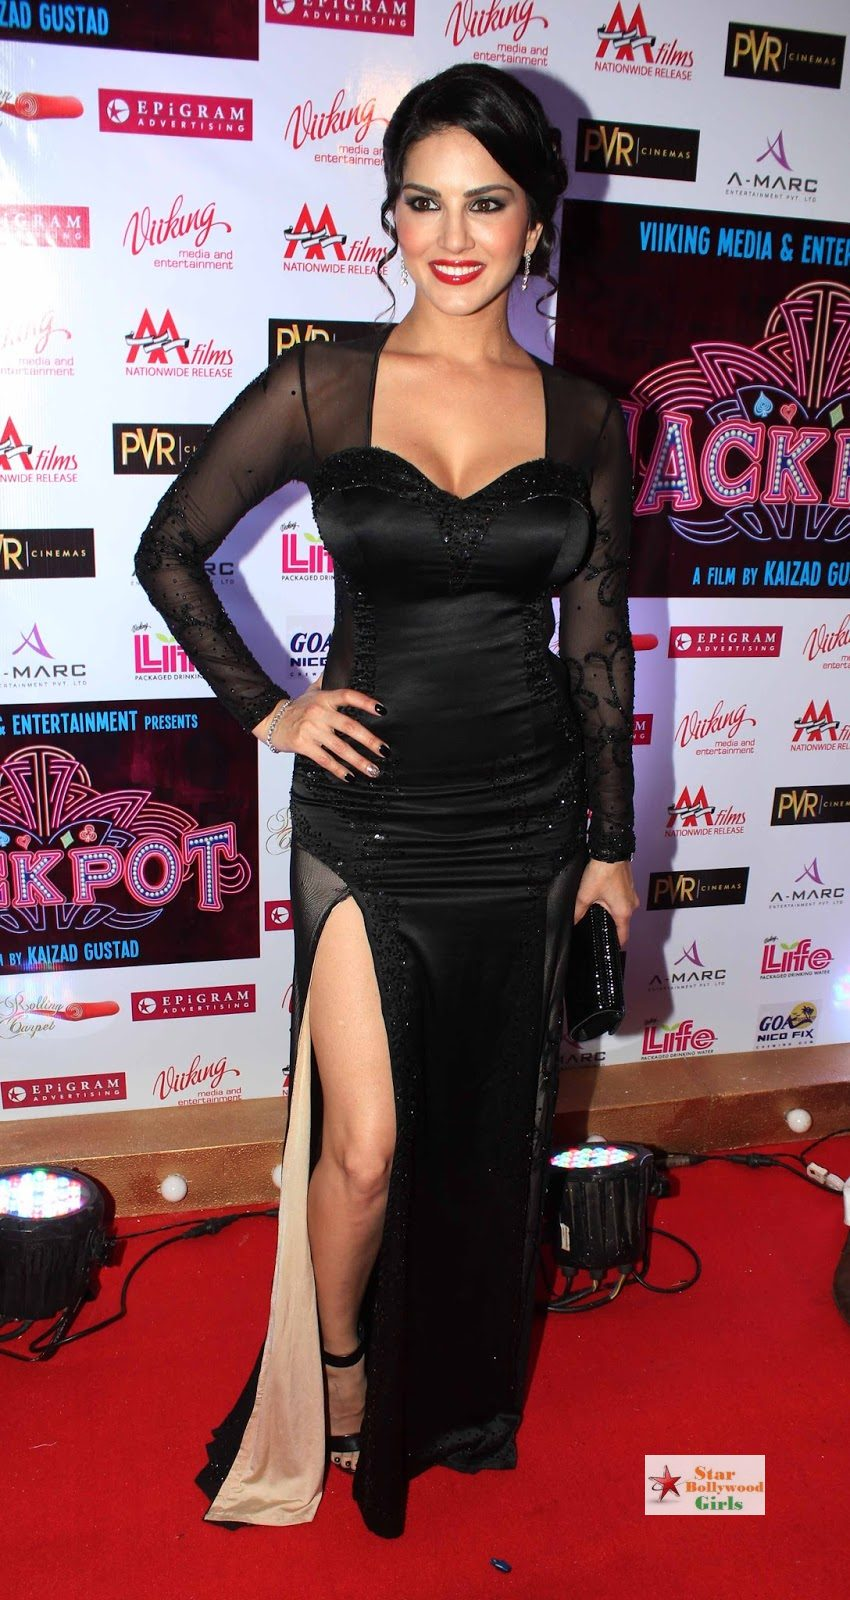 Sunny Leone Hot Skin Show In a Black See-through Dress At PVR Cinemas in Juhu9